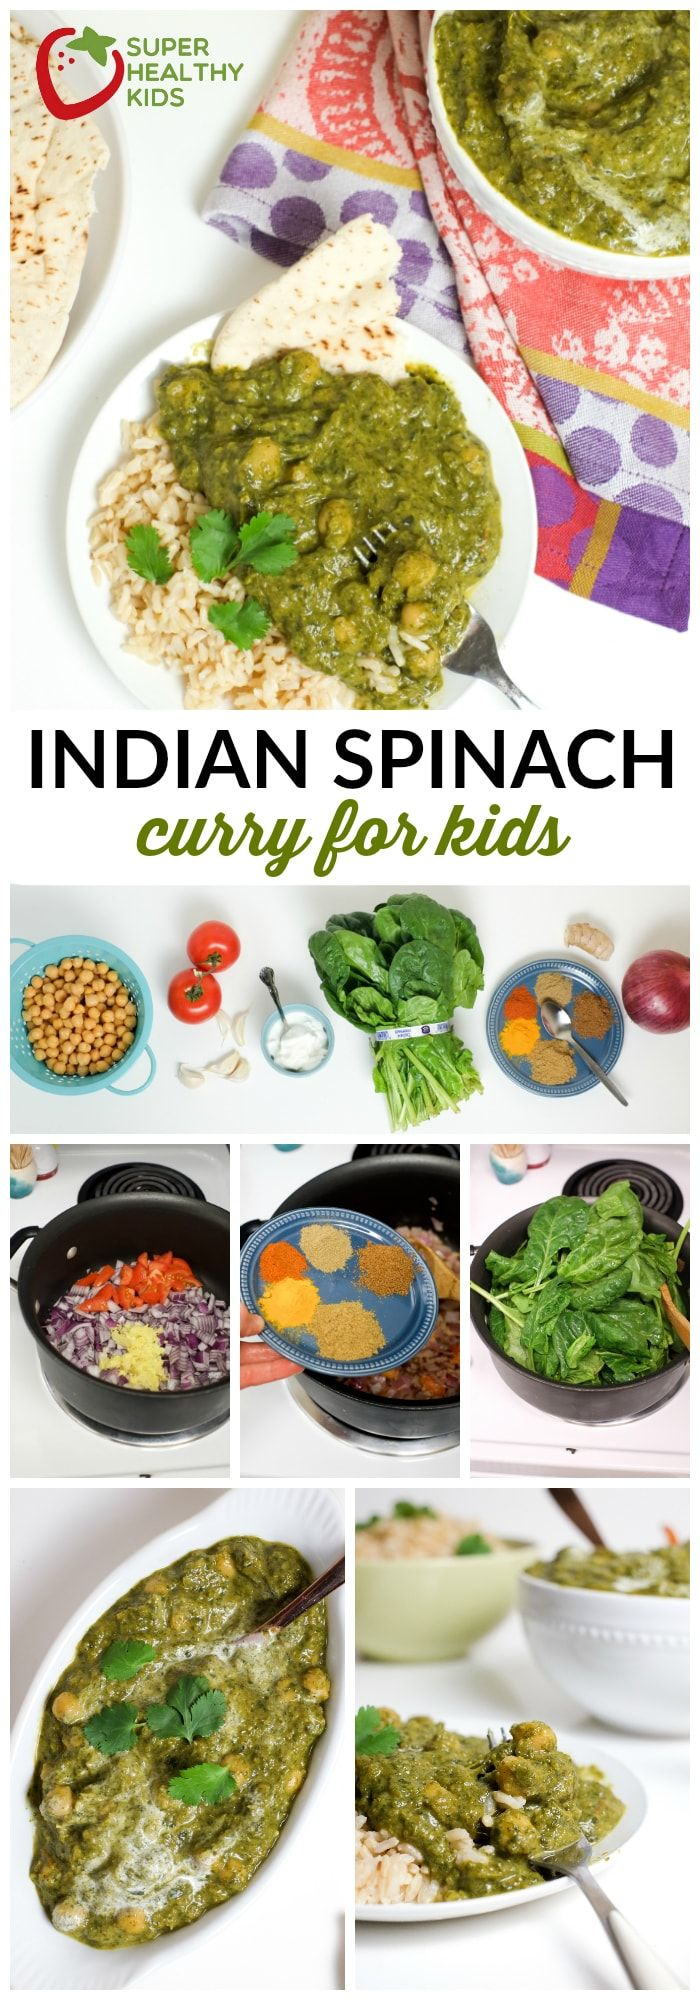 Indian Spinach Curry for Kids